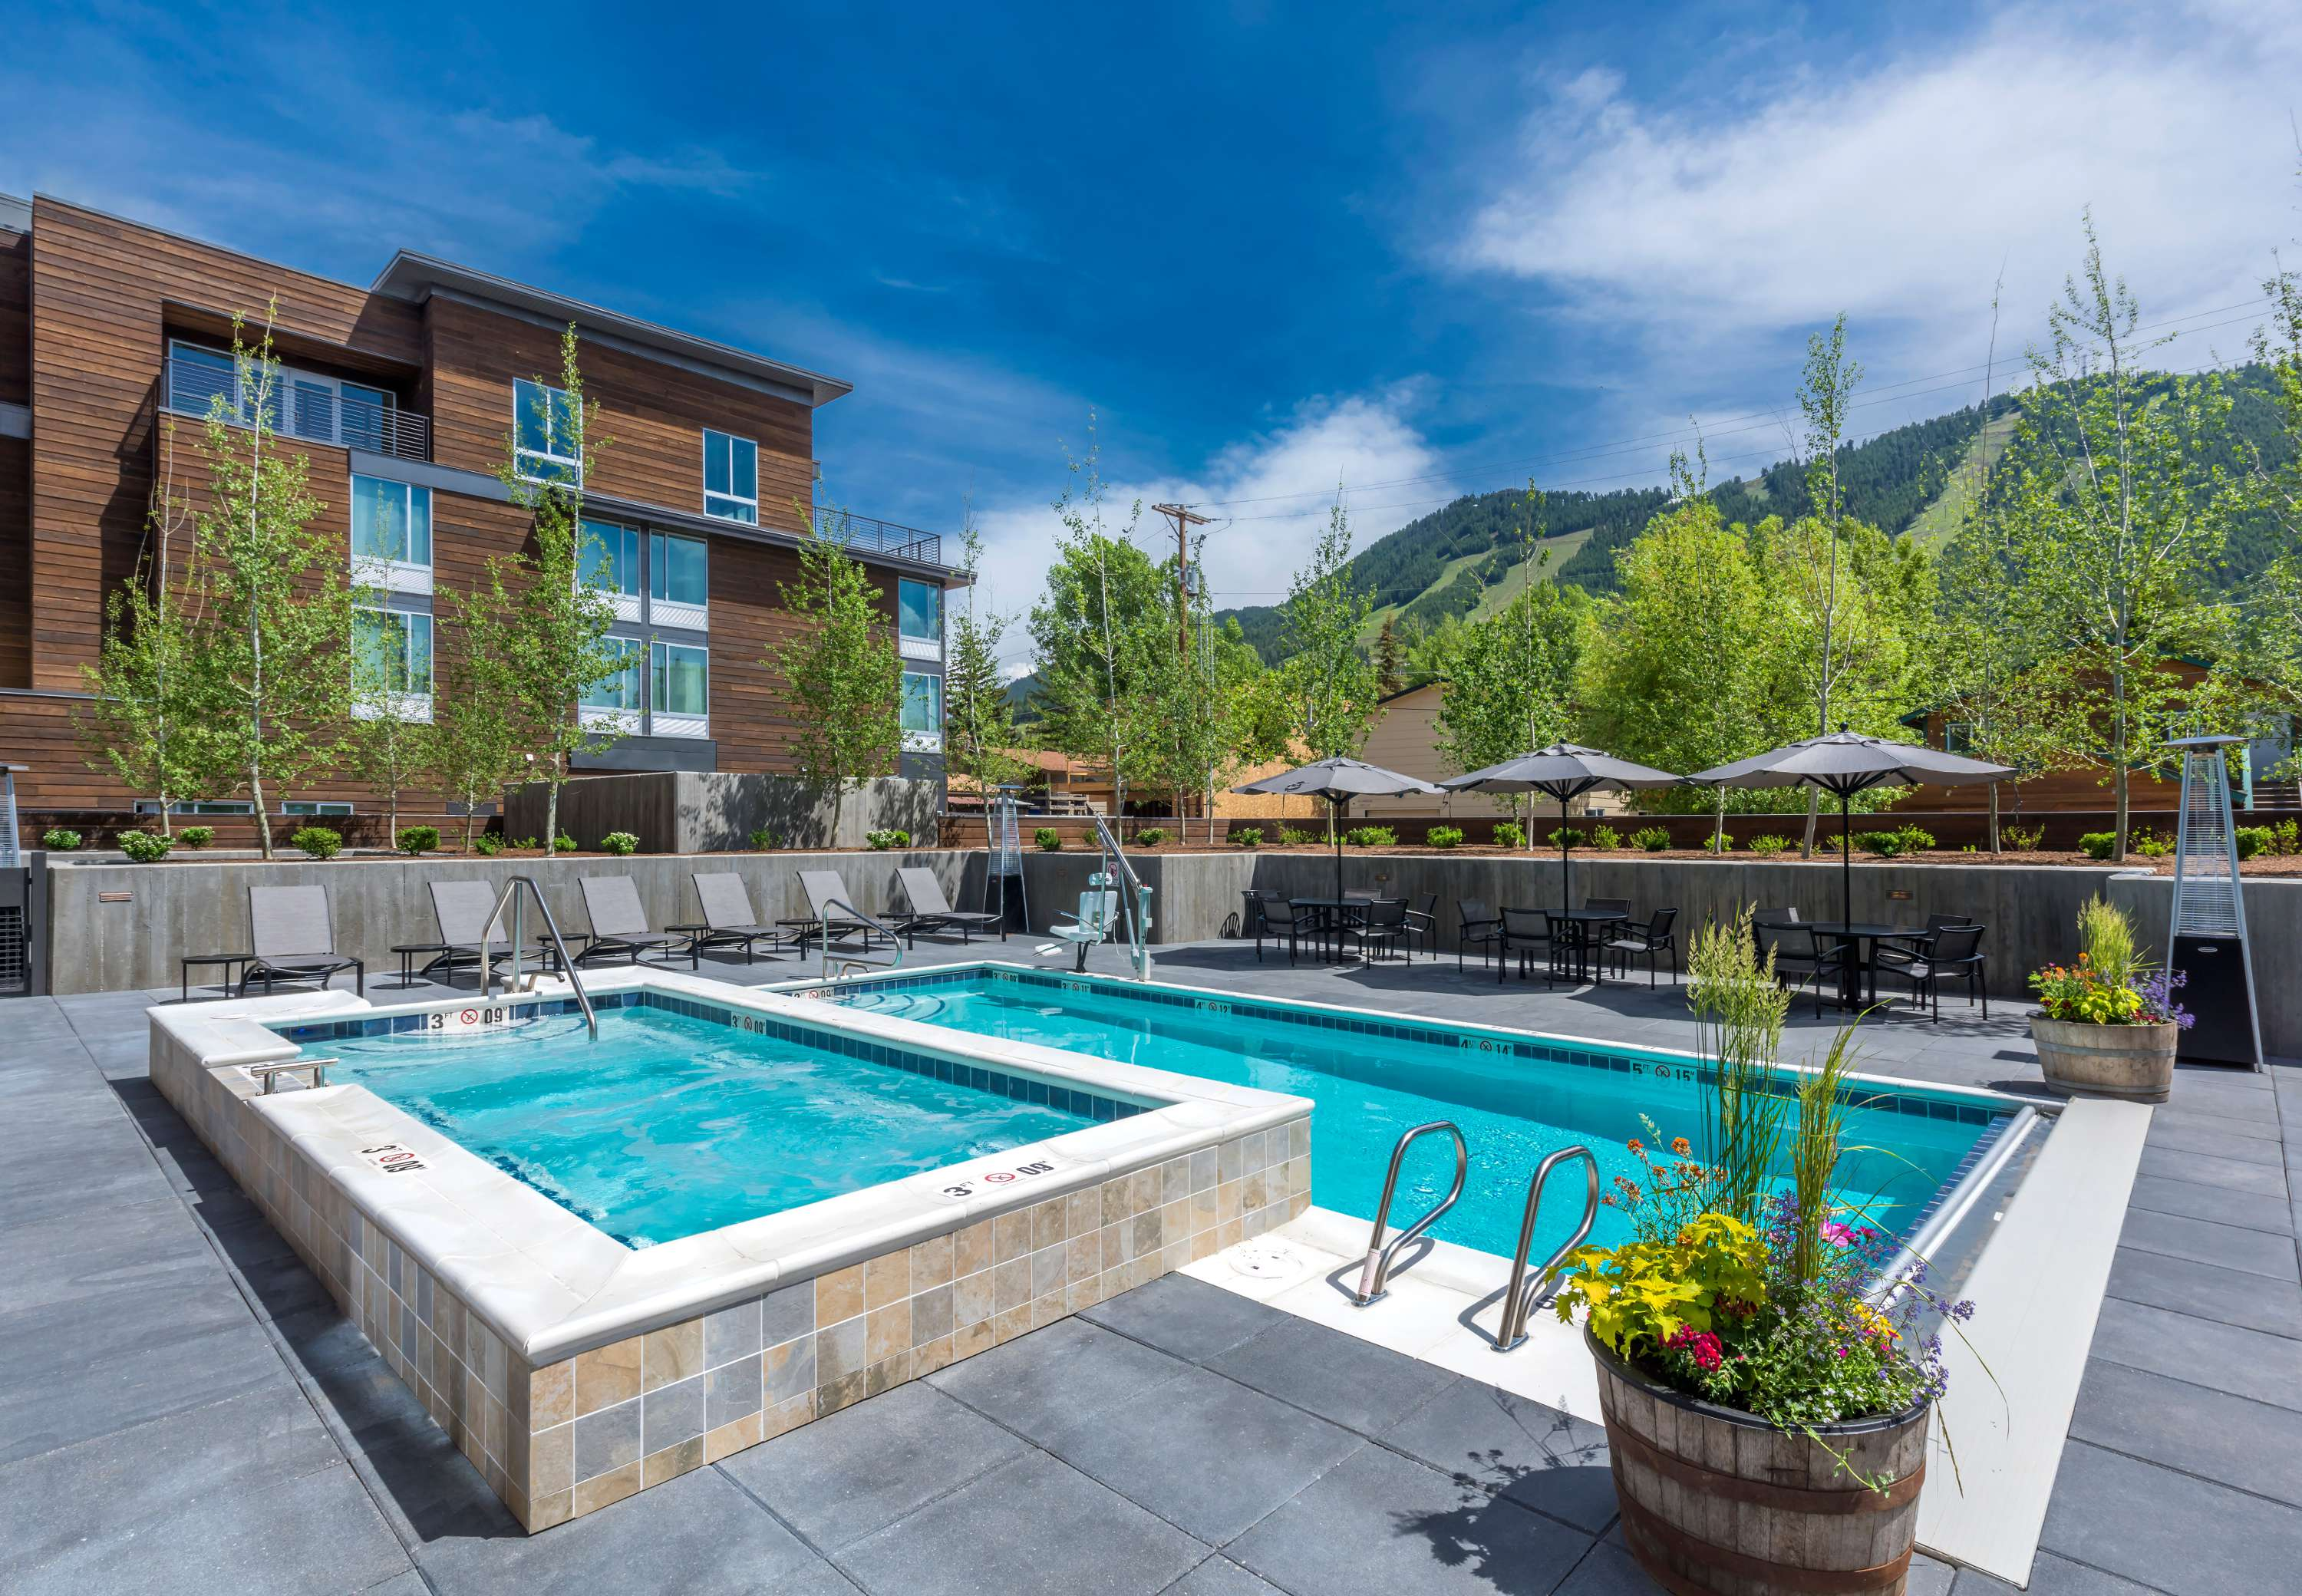 SpringHill Suites by Marriott Jackson Hole image 10